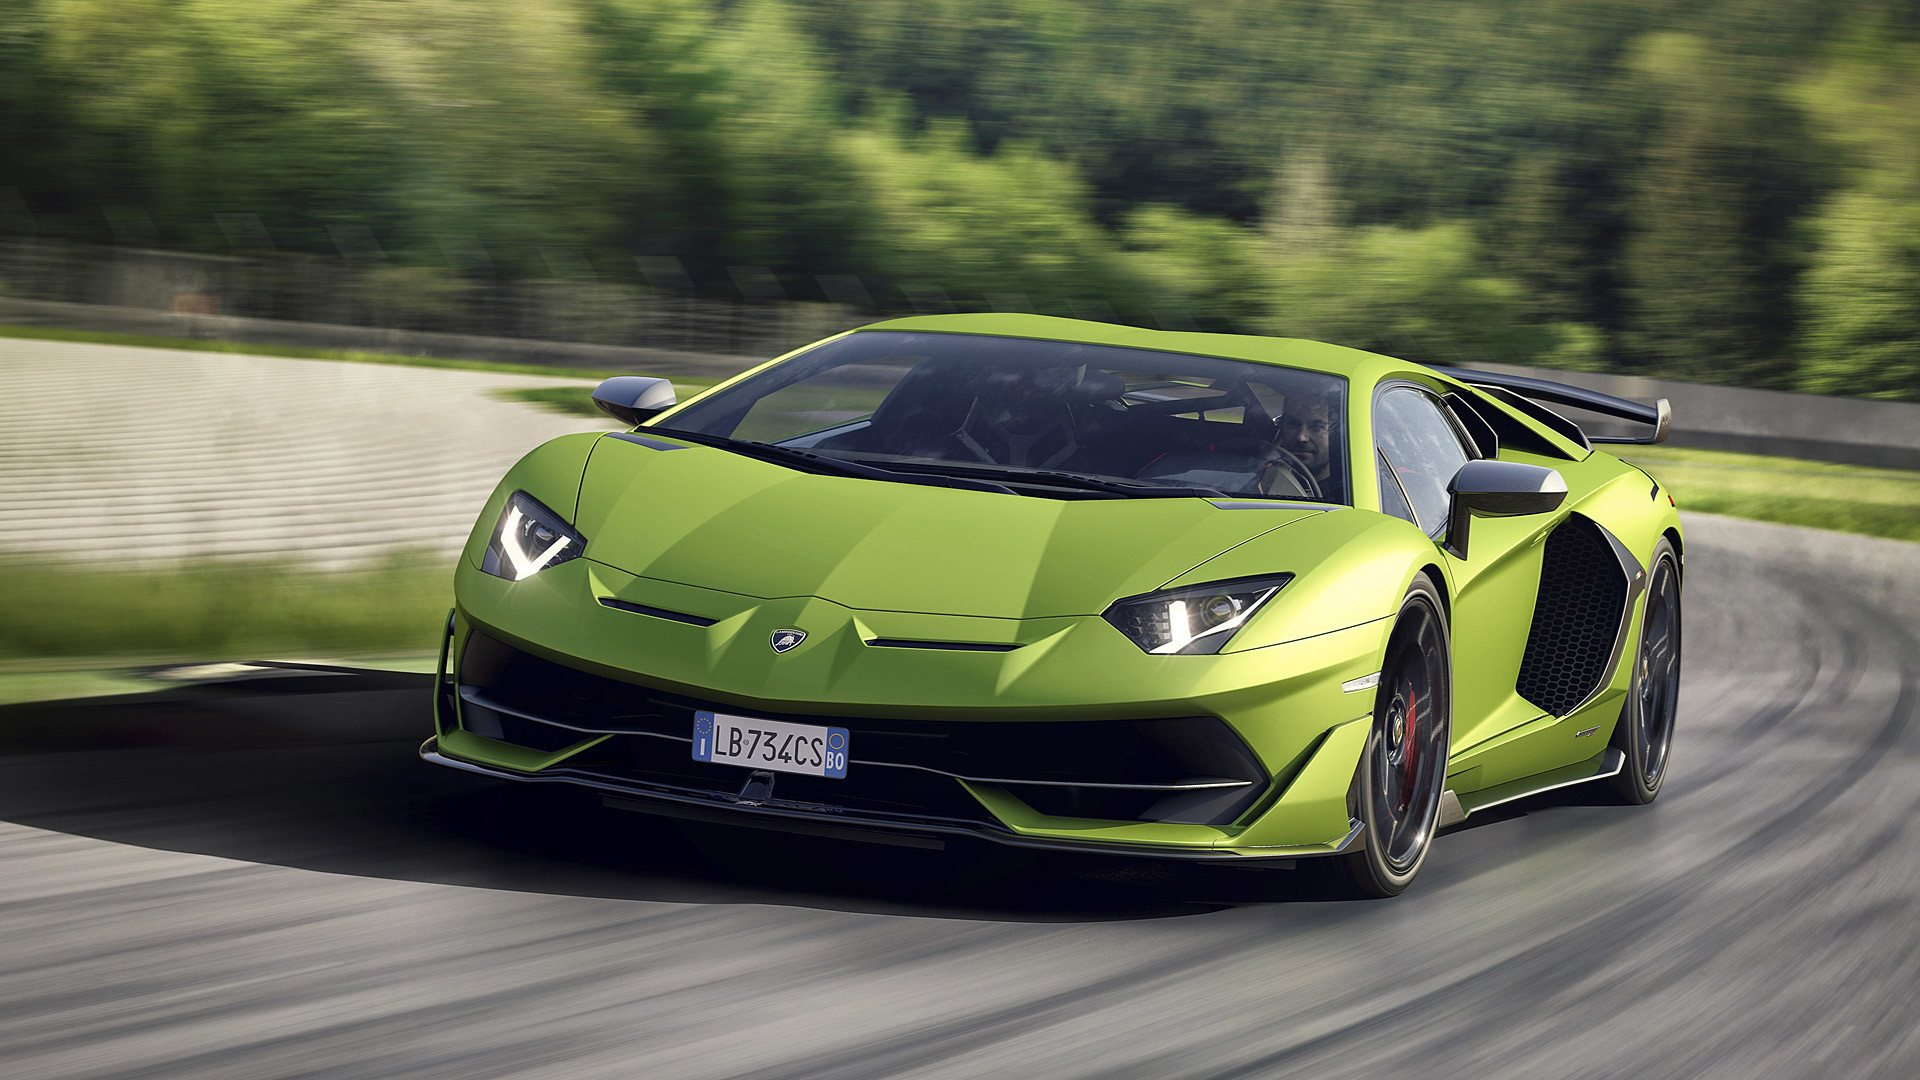 Used Lamborghini for Sale in Toronto ON